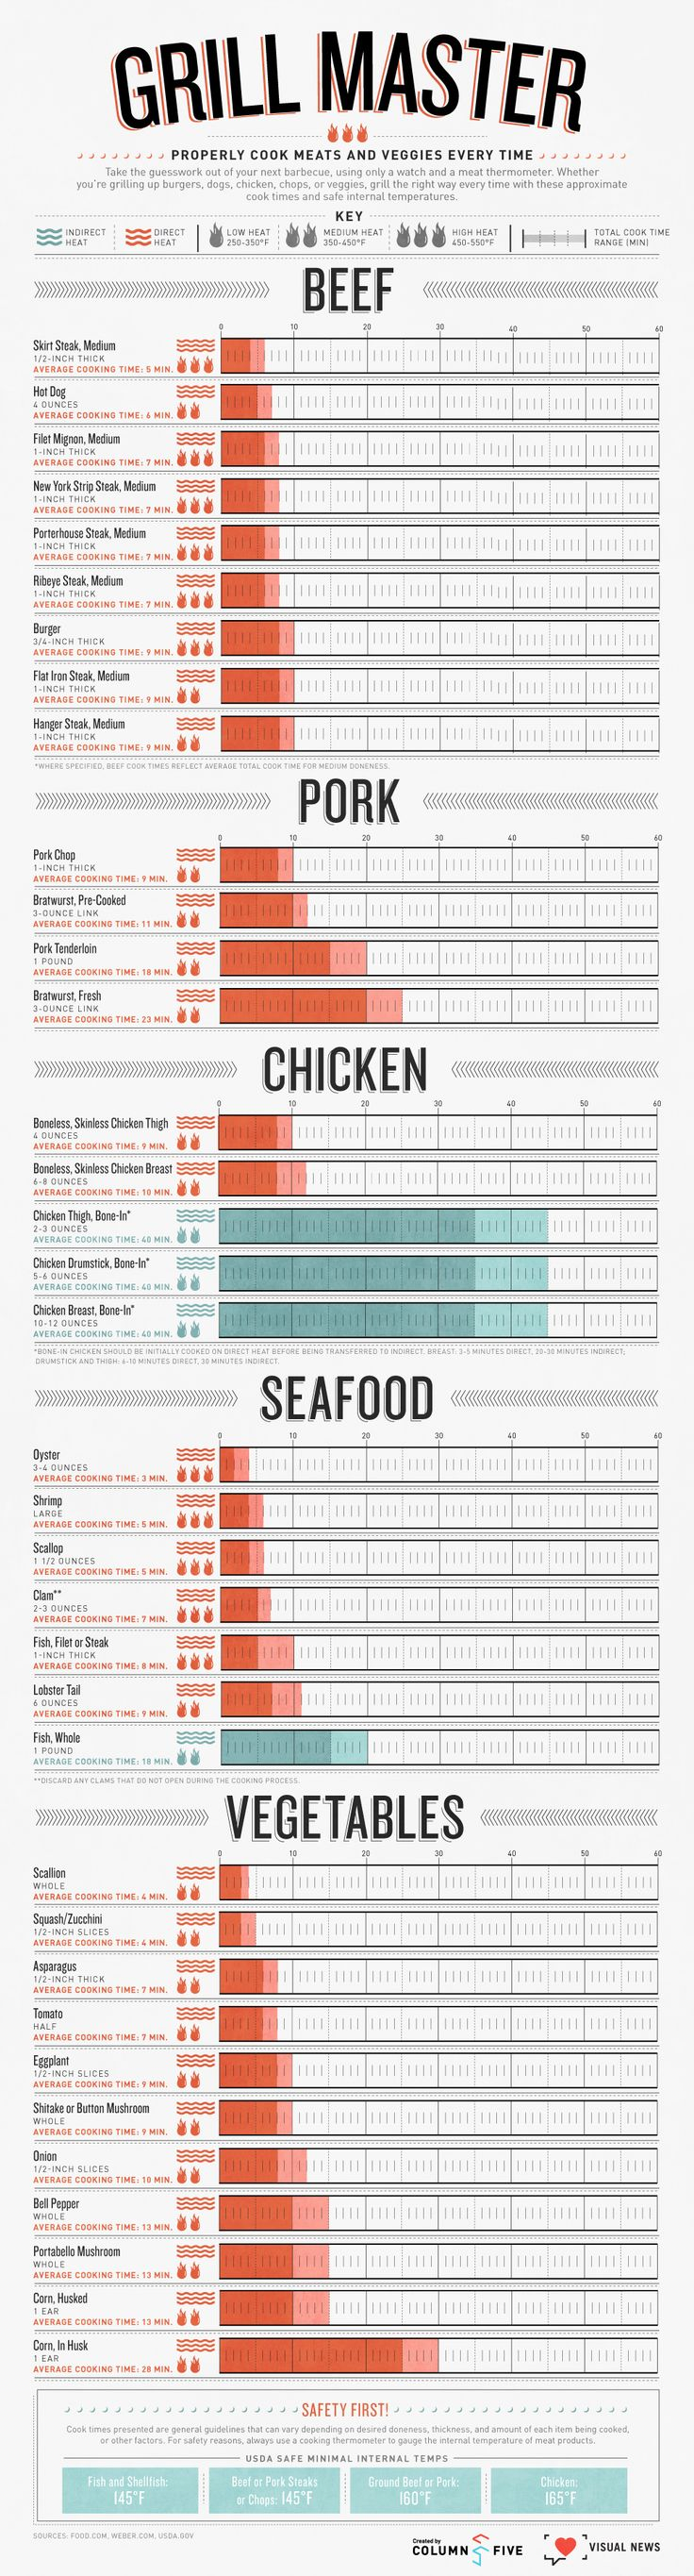 This is awesome... a Grilling Guide to properly cook meats and veggies every time. #cooking #grill